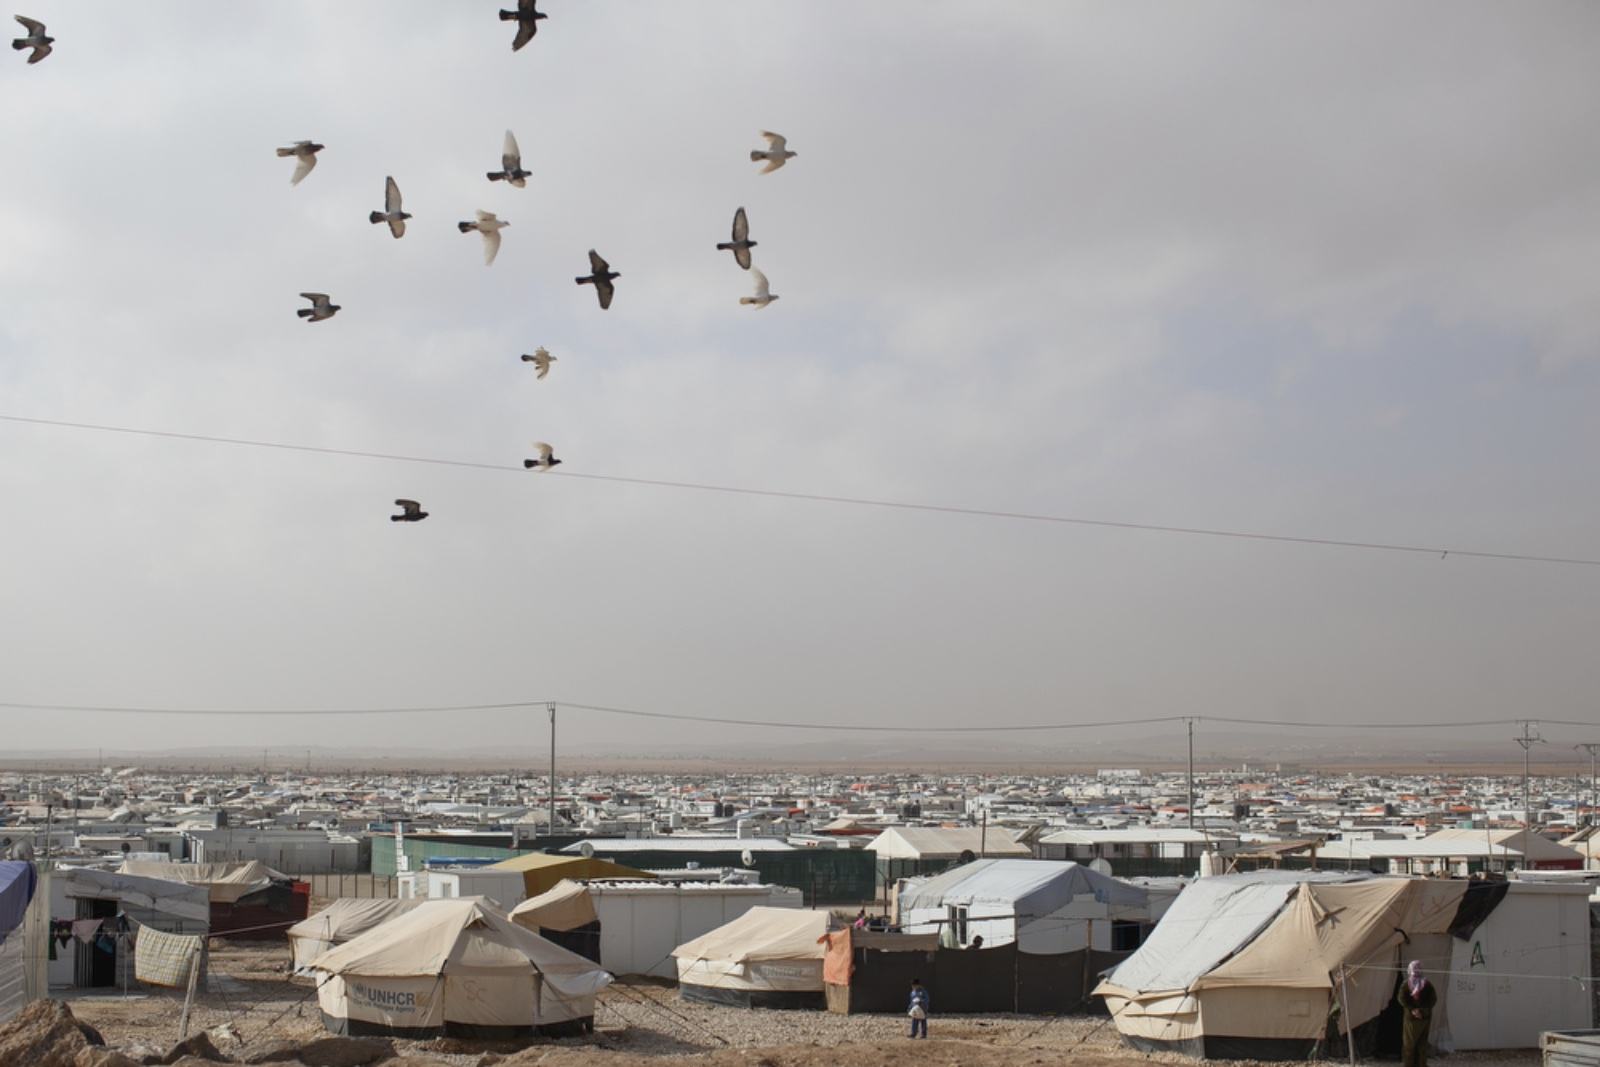 A view of Zaatari refugee camp. (Christopher Lee/GroundTruth)